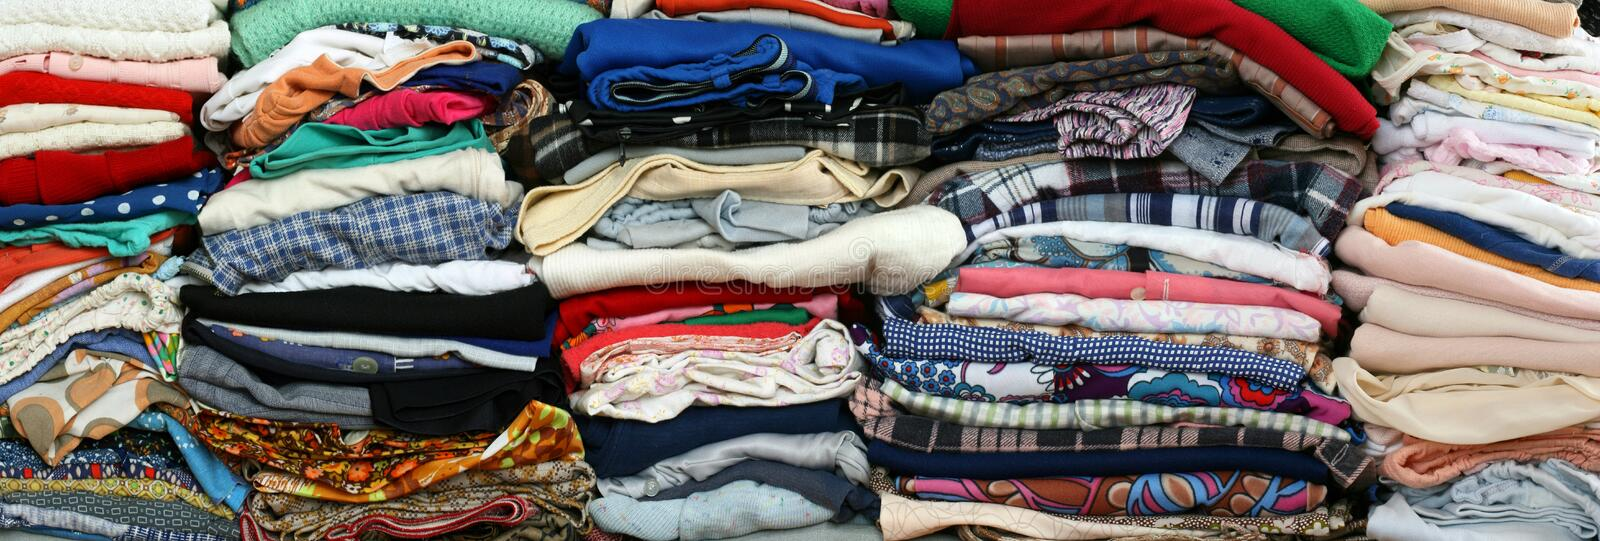 Old clothes royalty free stock photo